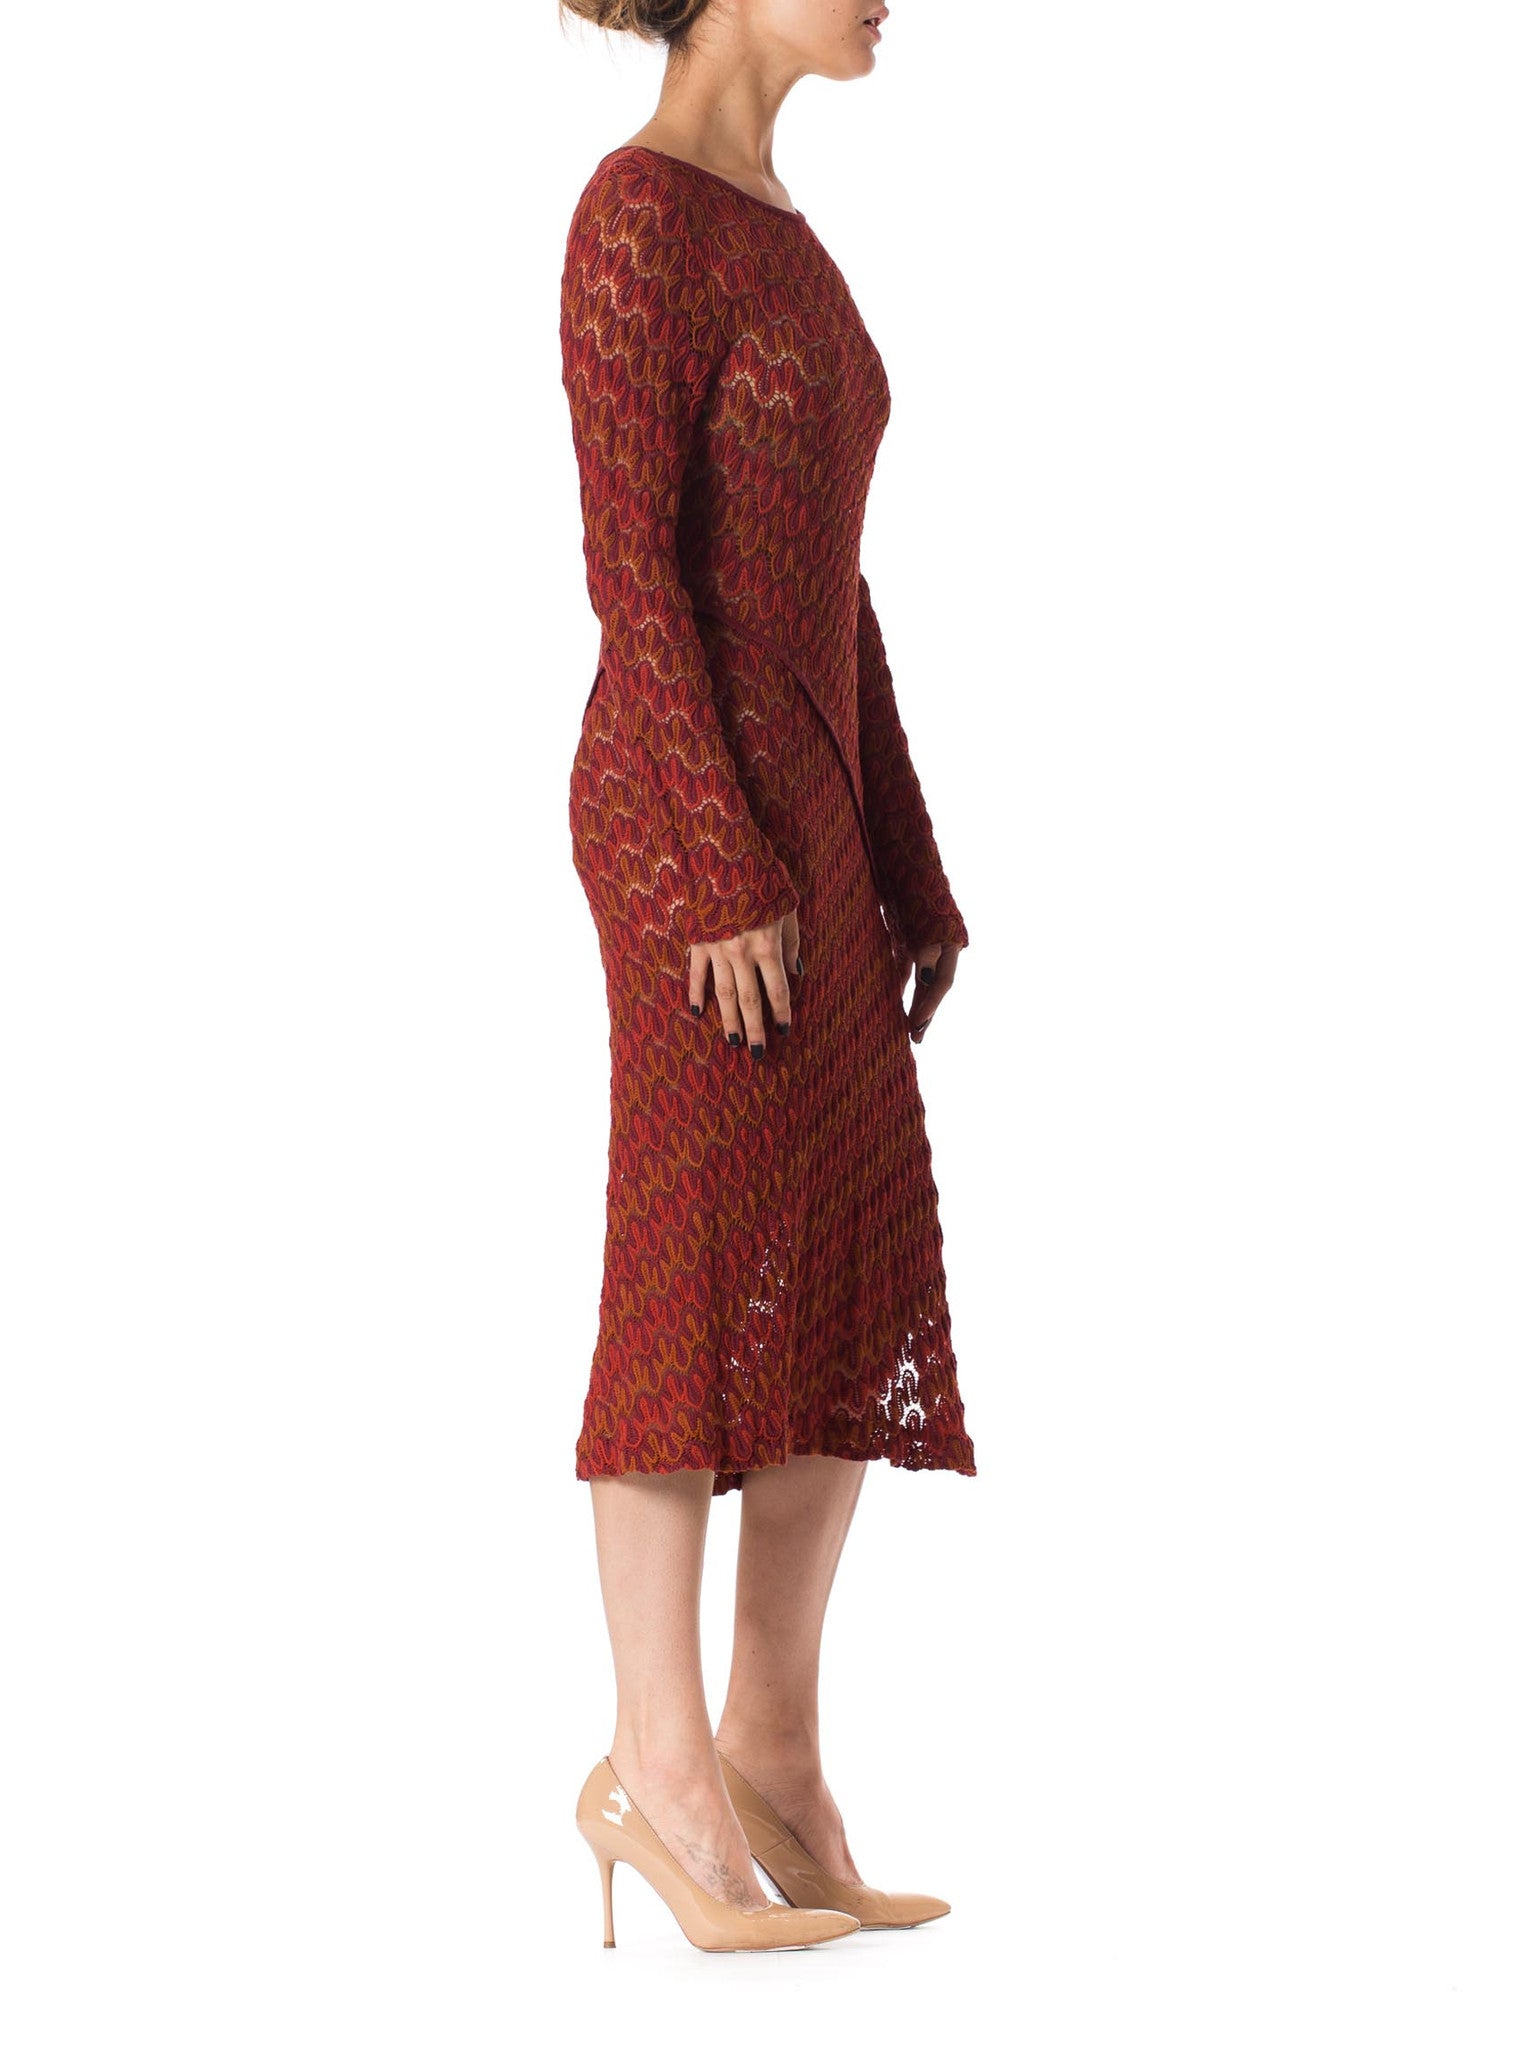 1970S Missoni Knit Style Burgundy Silk Long Sleeve Dress With Side Slit